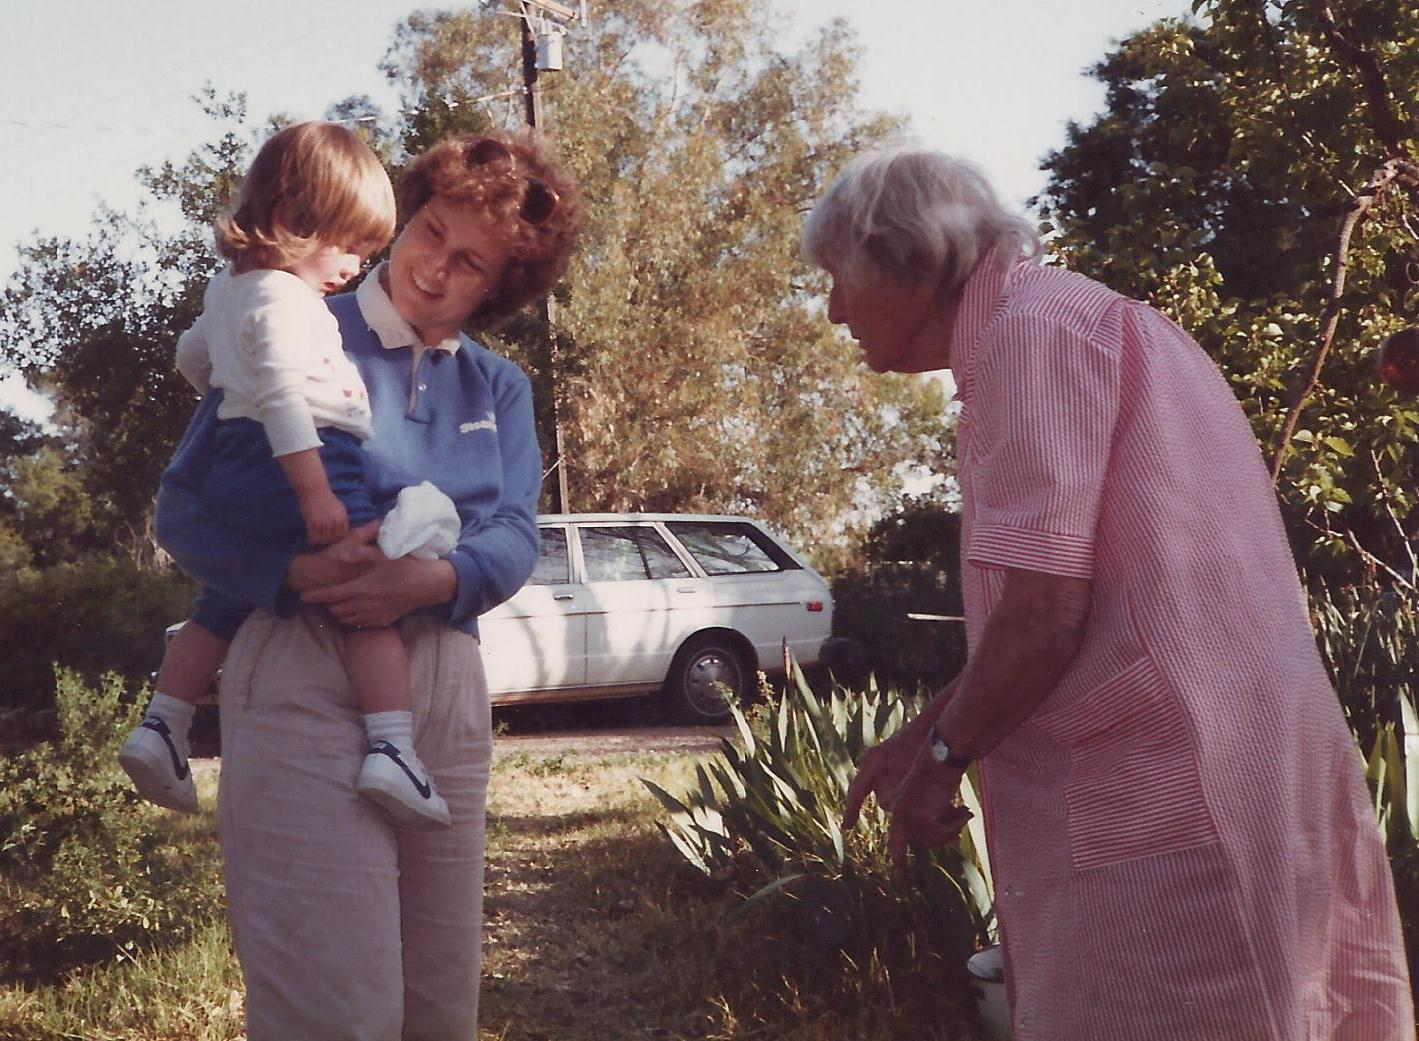 THE WHITE TOYOTA station wagon that Agnes Baron (right) got for herself is in the background. Visiting Agnes are (left) Margaret Magnus and her daughter Stephanie Ervin. (Sam Ervin photo, 1985.)